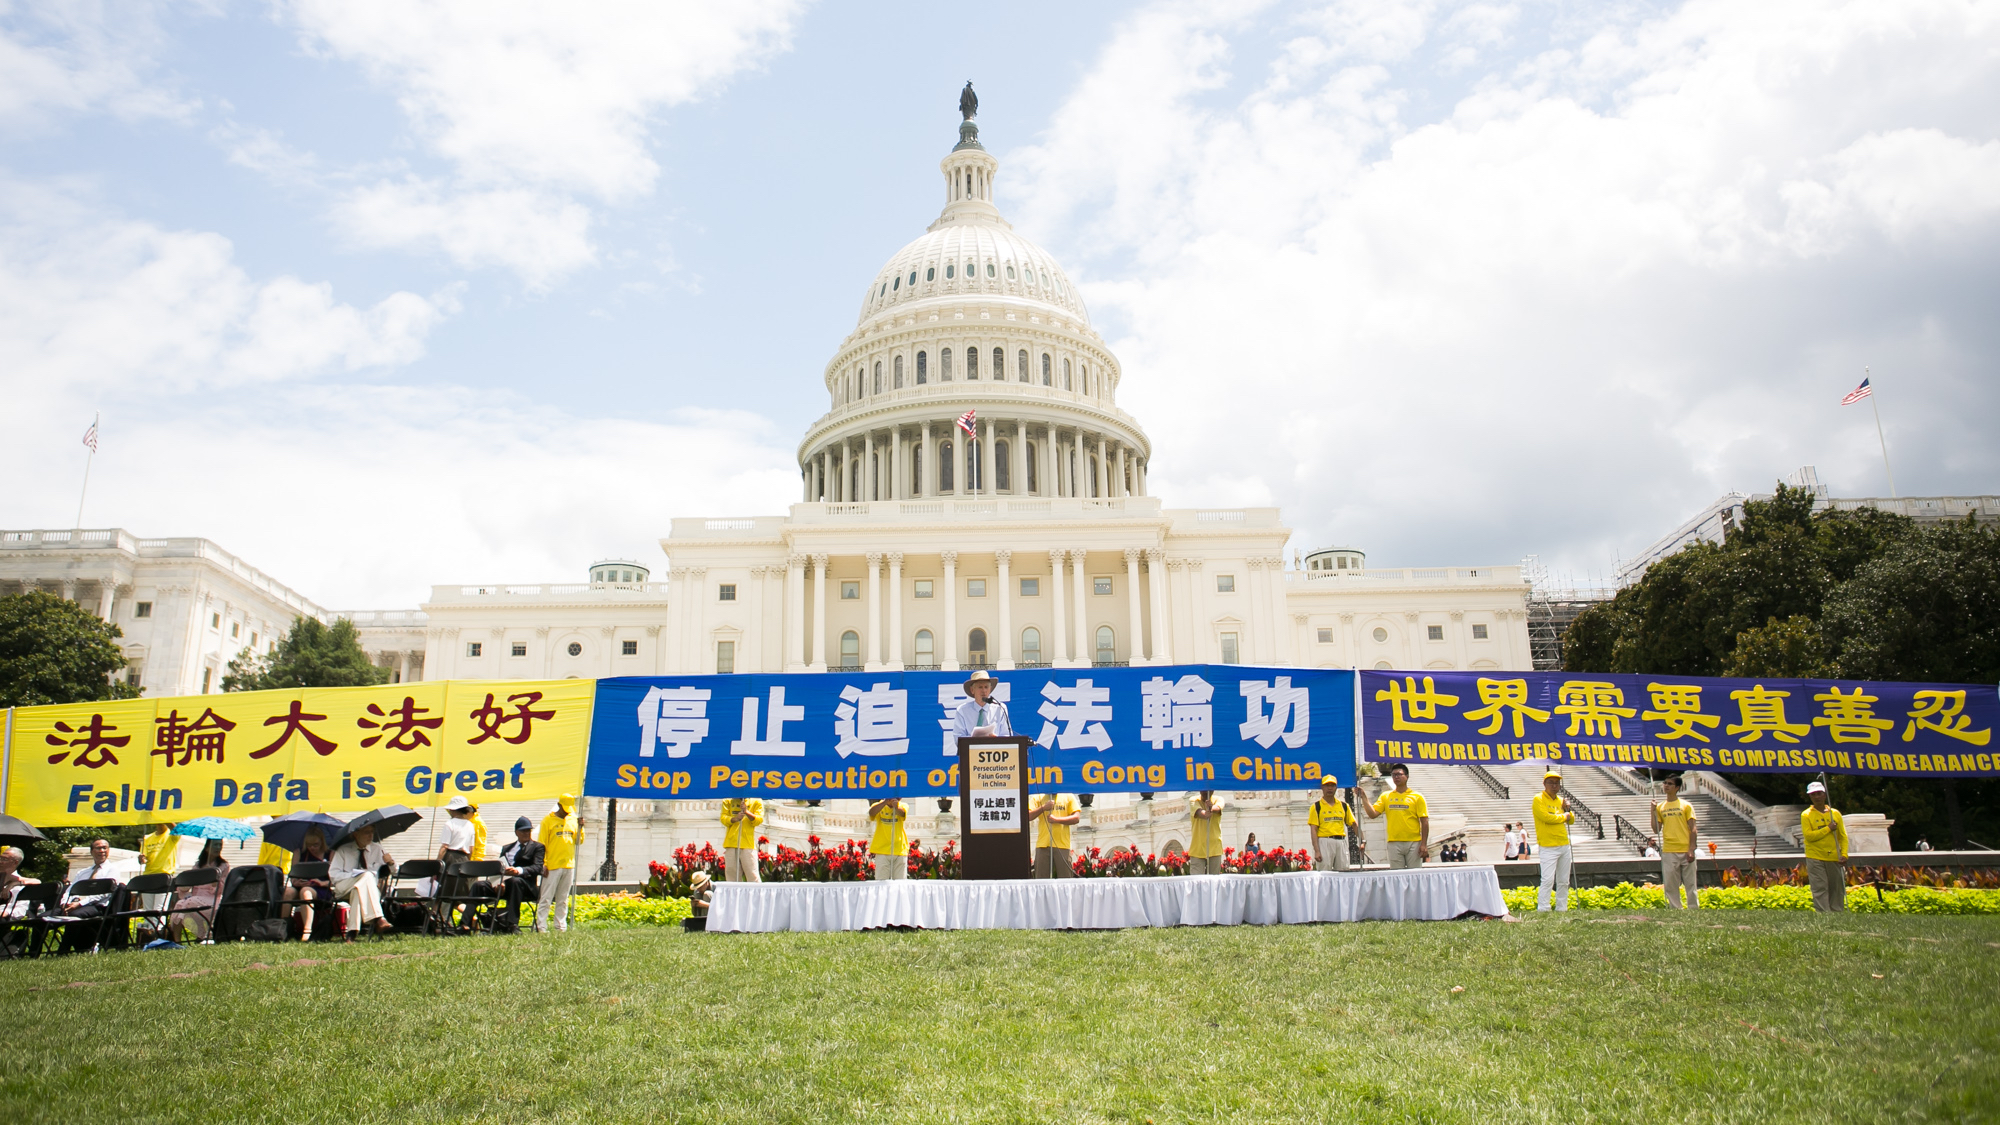 US Lawmakers Call for End to 20 Year Long Persecution of Falun Gong